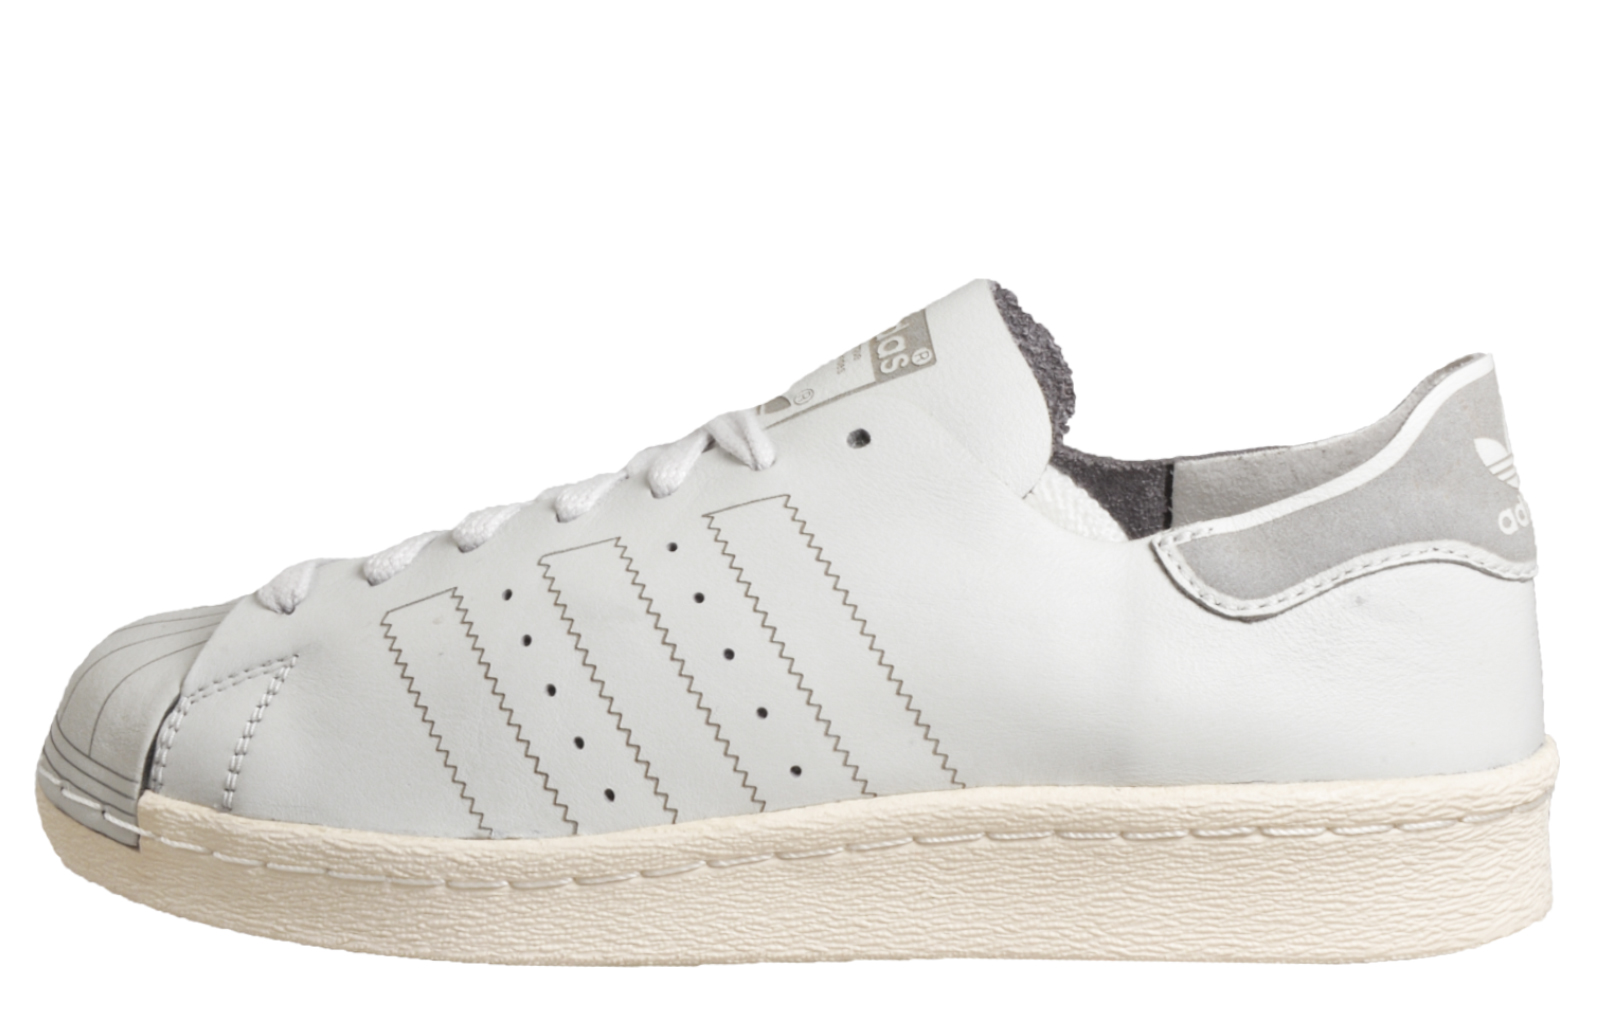 huge selection of 3e6b1 33e89 Adidas Originals Superstar 80s Decon Women s Casual Vintage Trainers B Grade